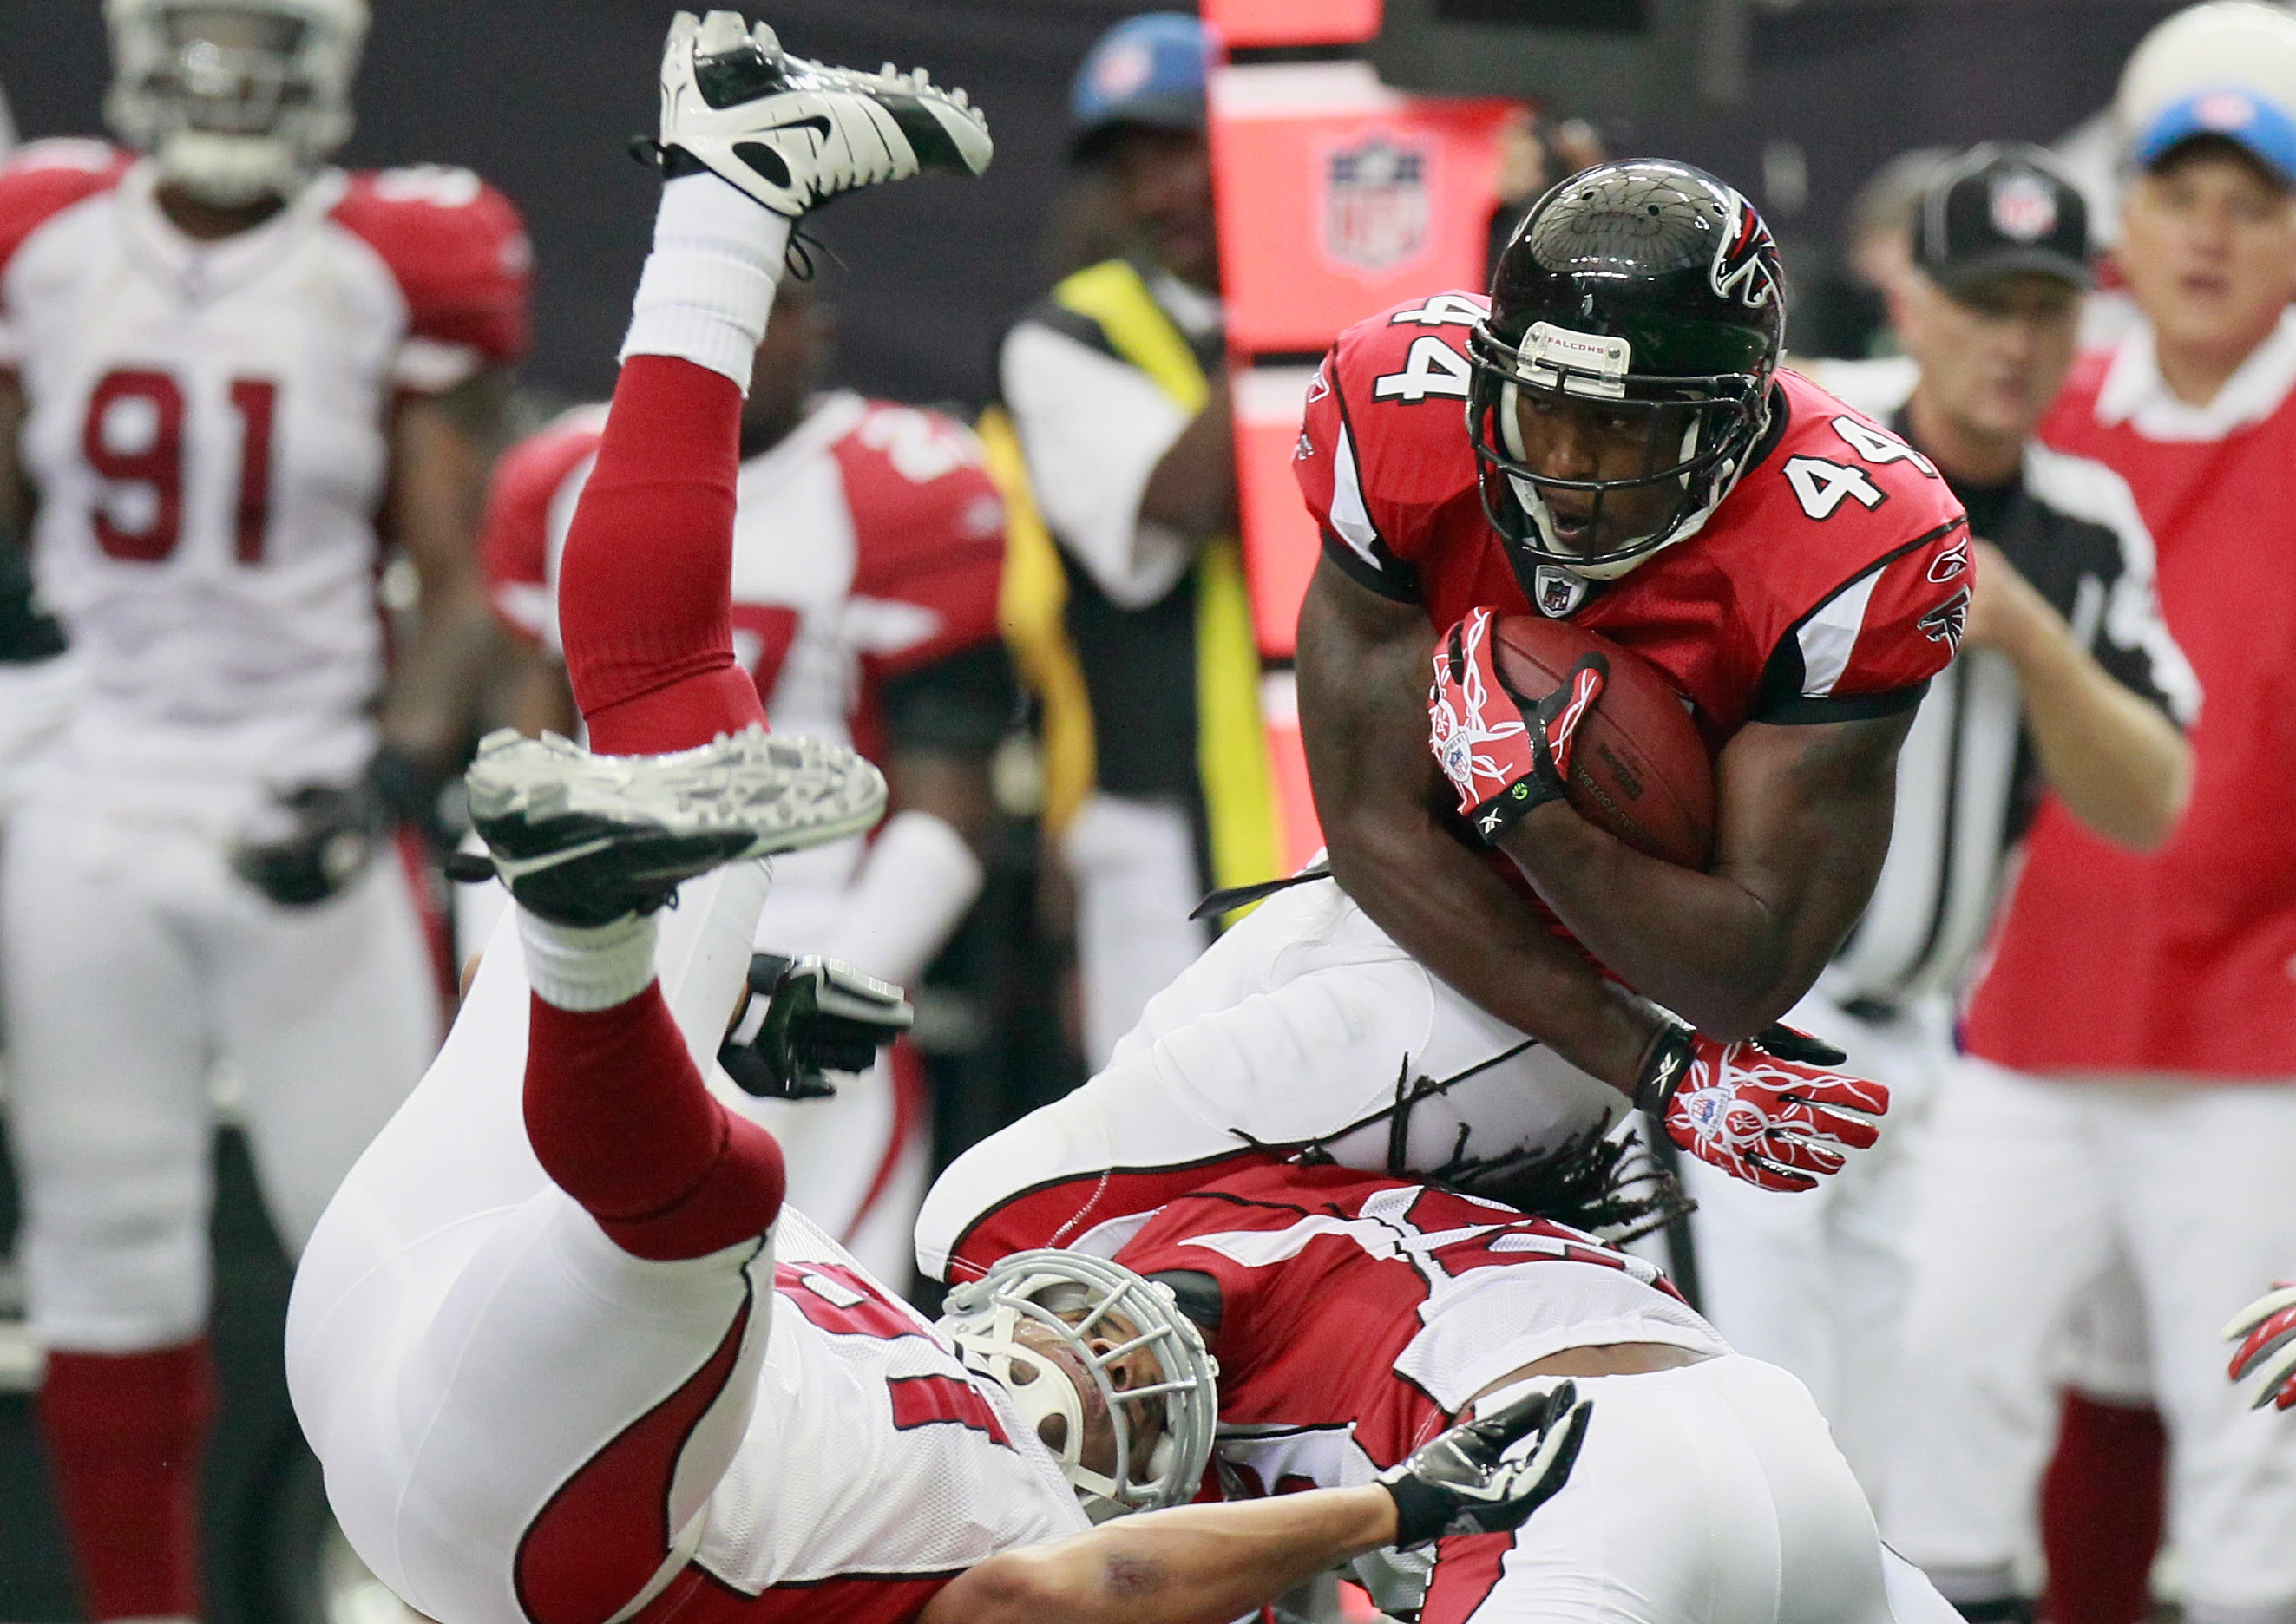 ATLANTA - SEPTEMBER 19:  Jason Snelling #44 of the Atlanta Falcons dives for more yardage against the Arizona Cardinals at Georgia Dome on September 19, 2010 in Atlanta, Georgia.  (Photo by Kevin C. Cox/Getty Images)